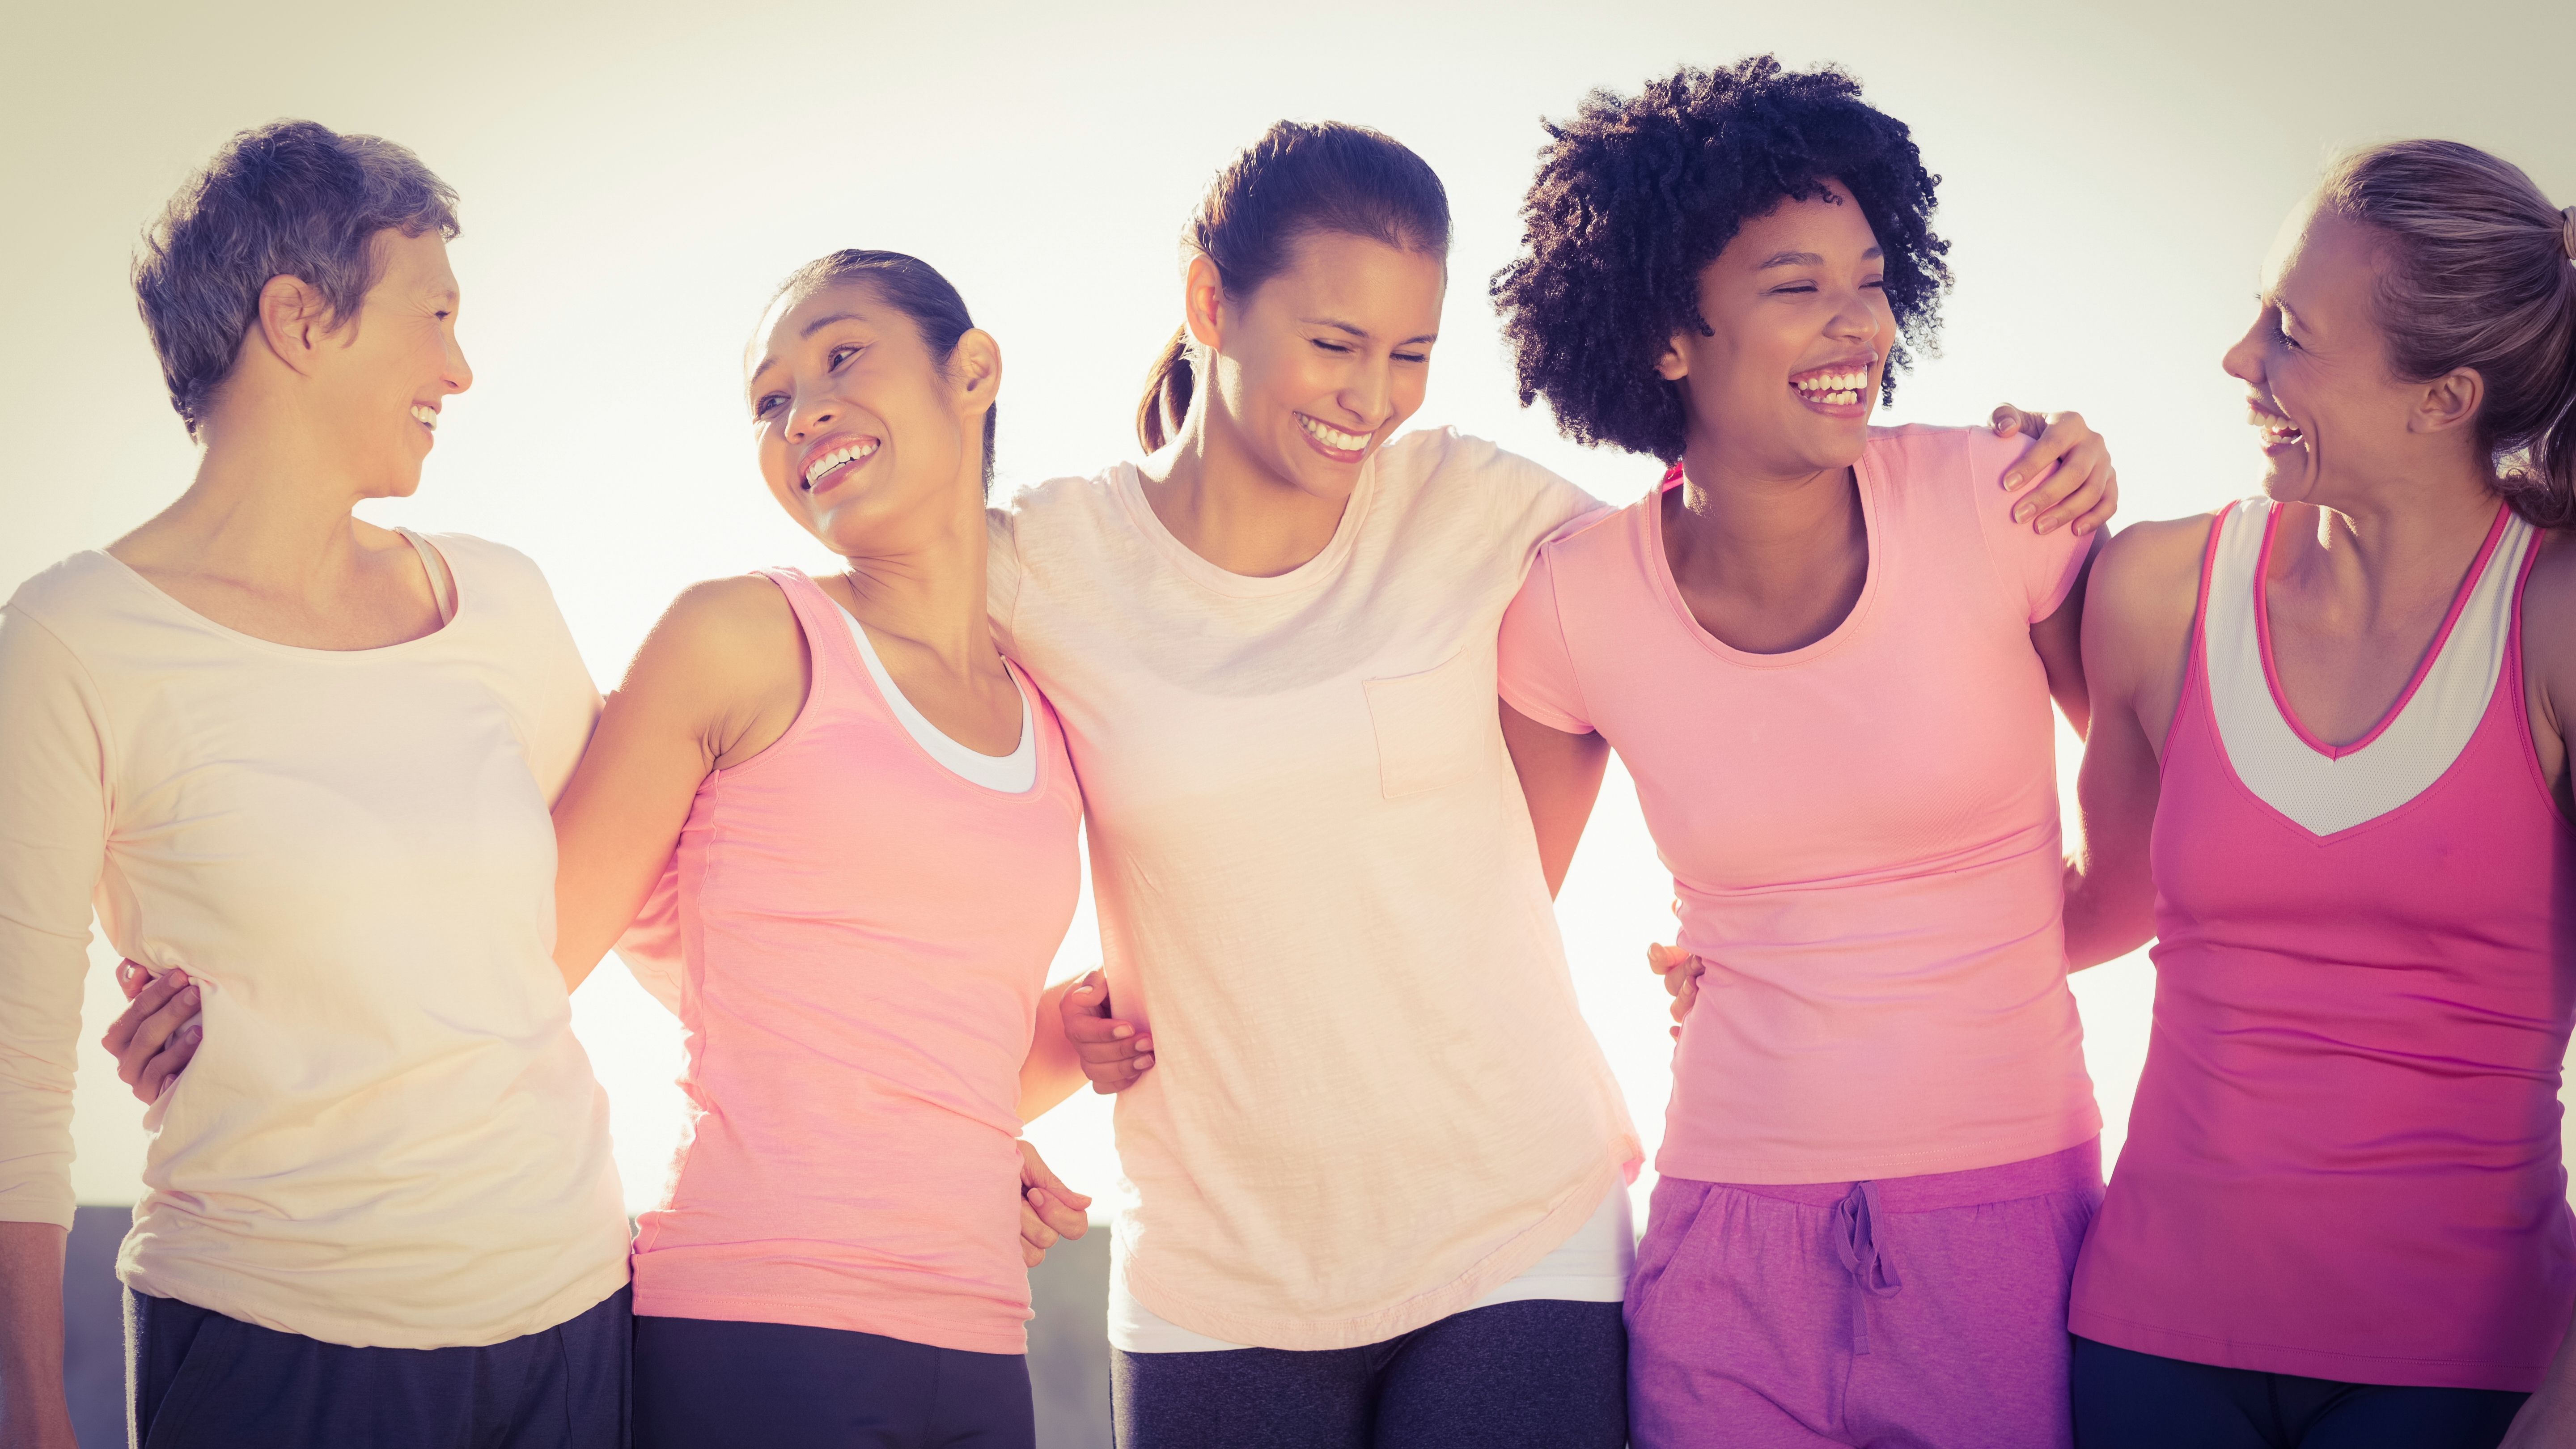 a group of multi ethnic women, all wearing pink to support breast cancer awareness, linking arms and smiling